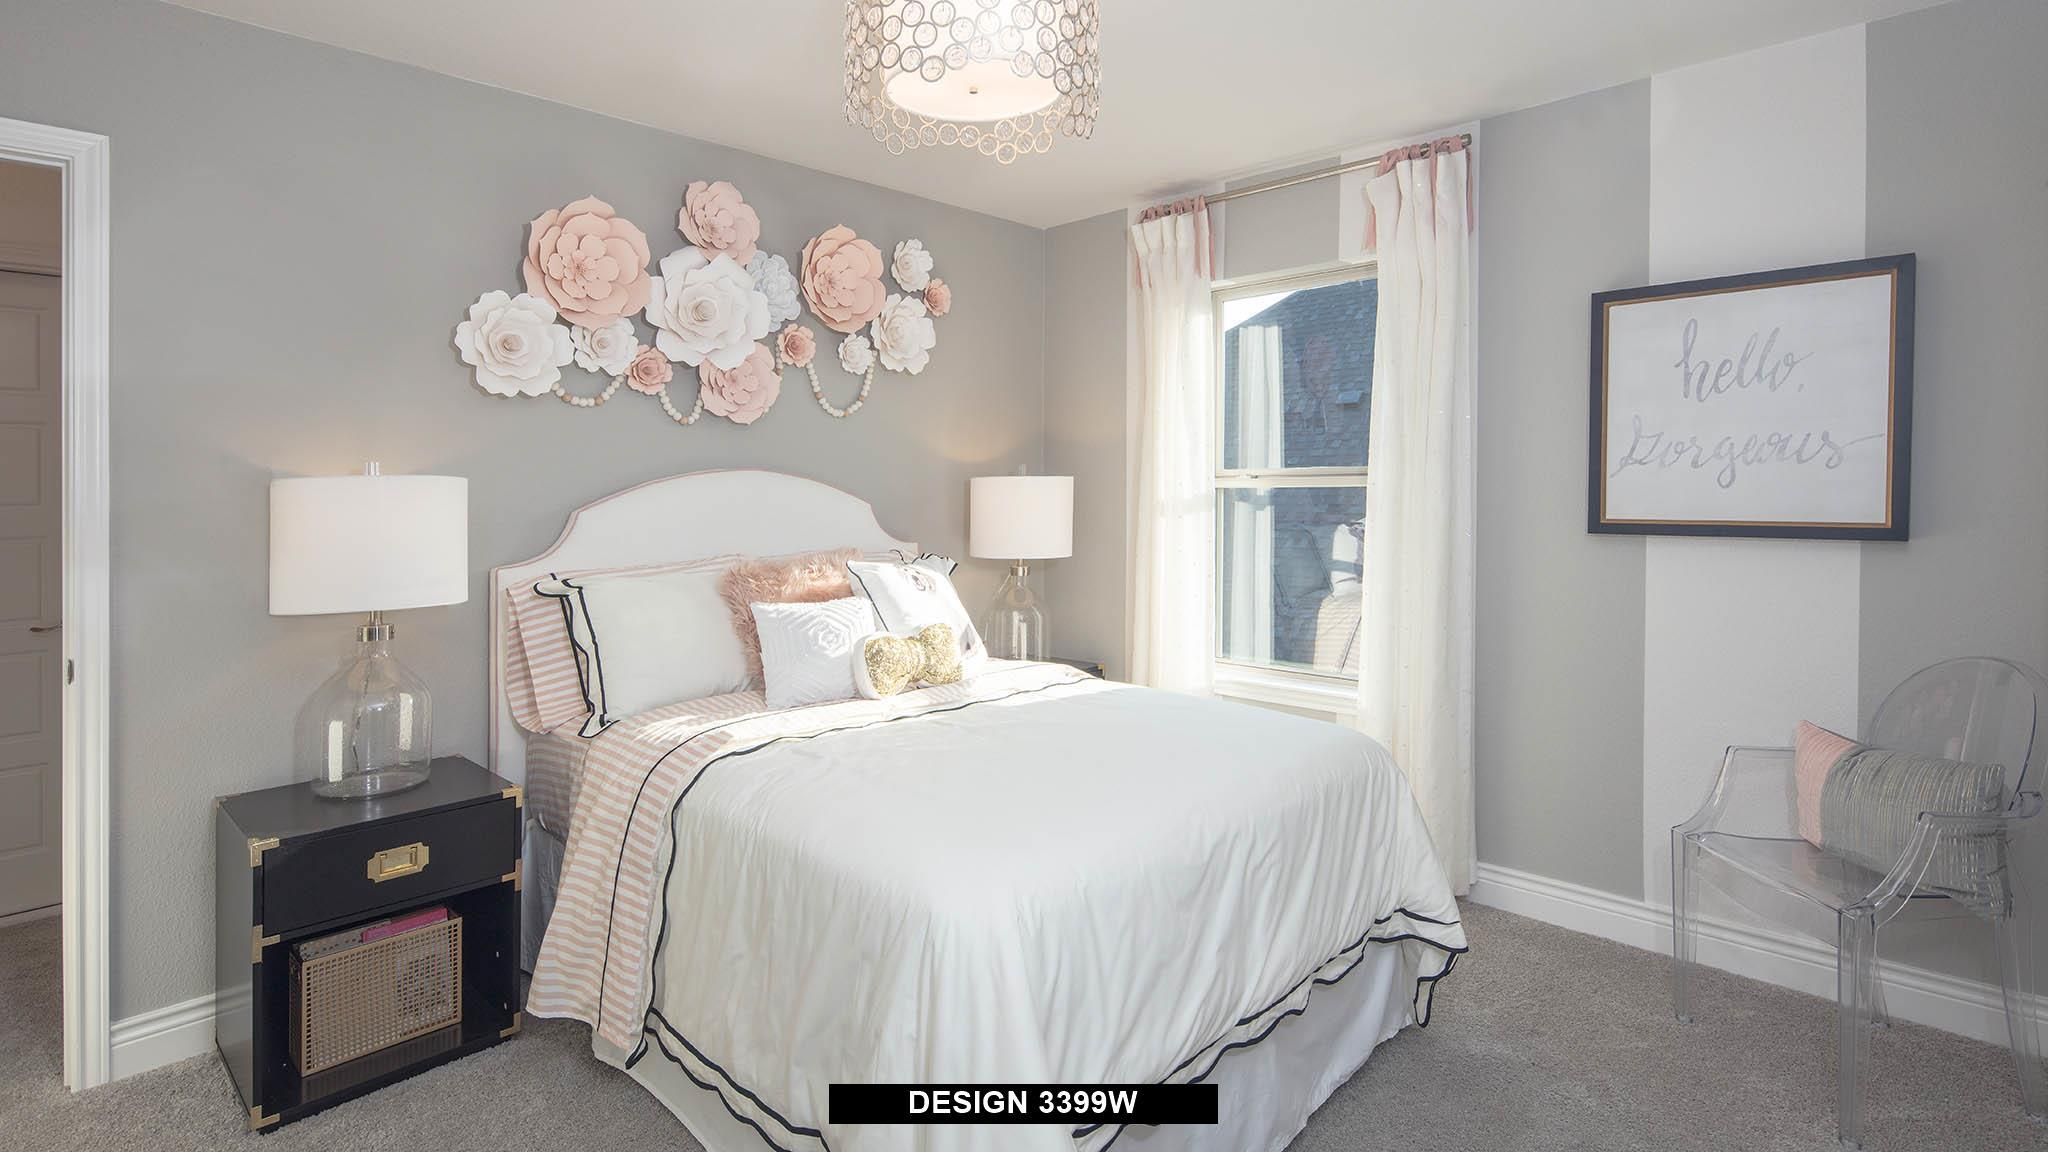 Bedroom-in-3399W-at-Lakes at Creekside 65'-in-Tomball